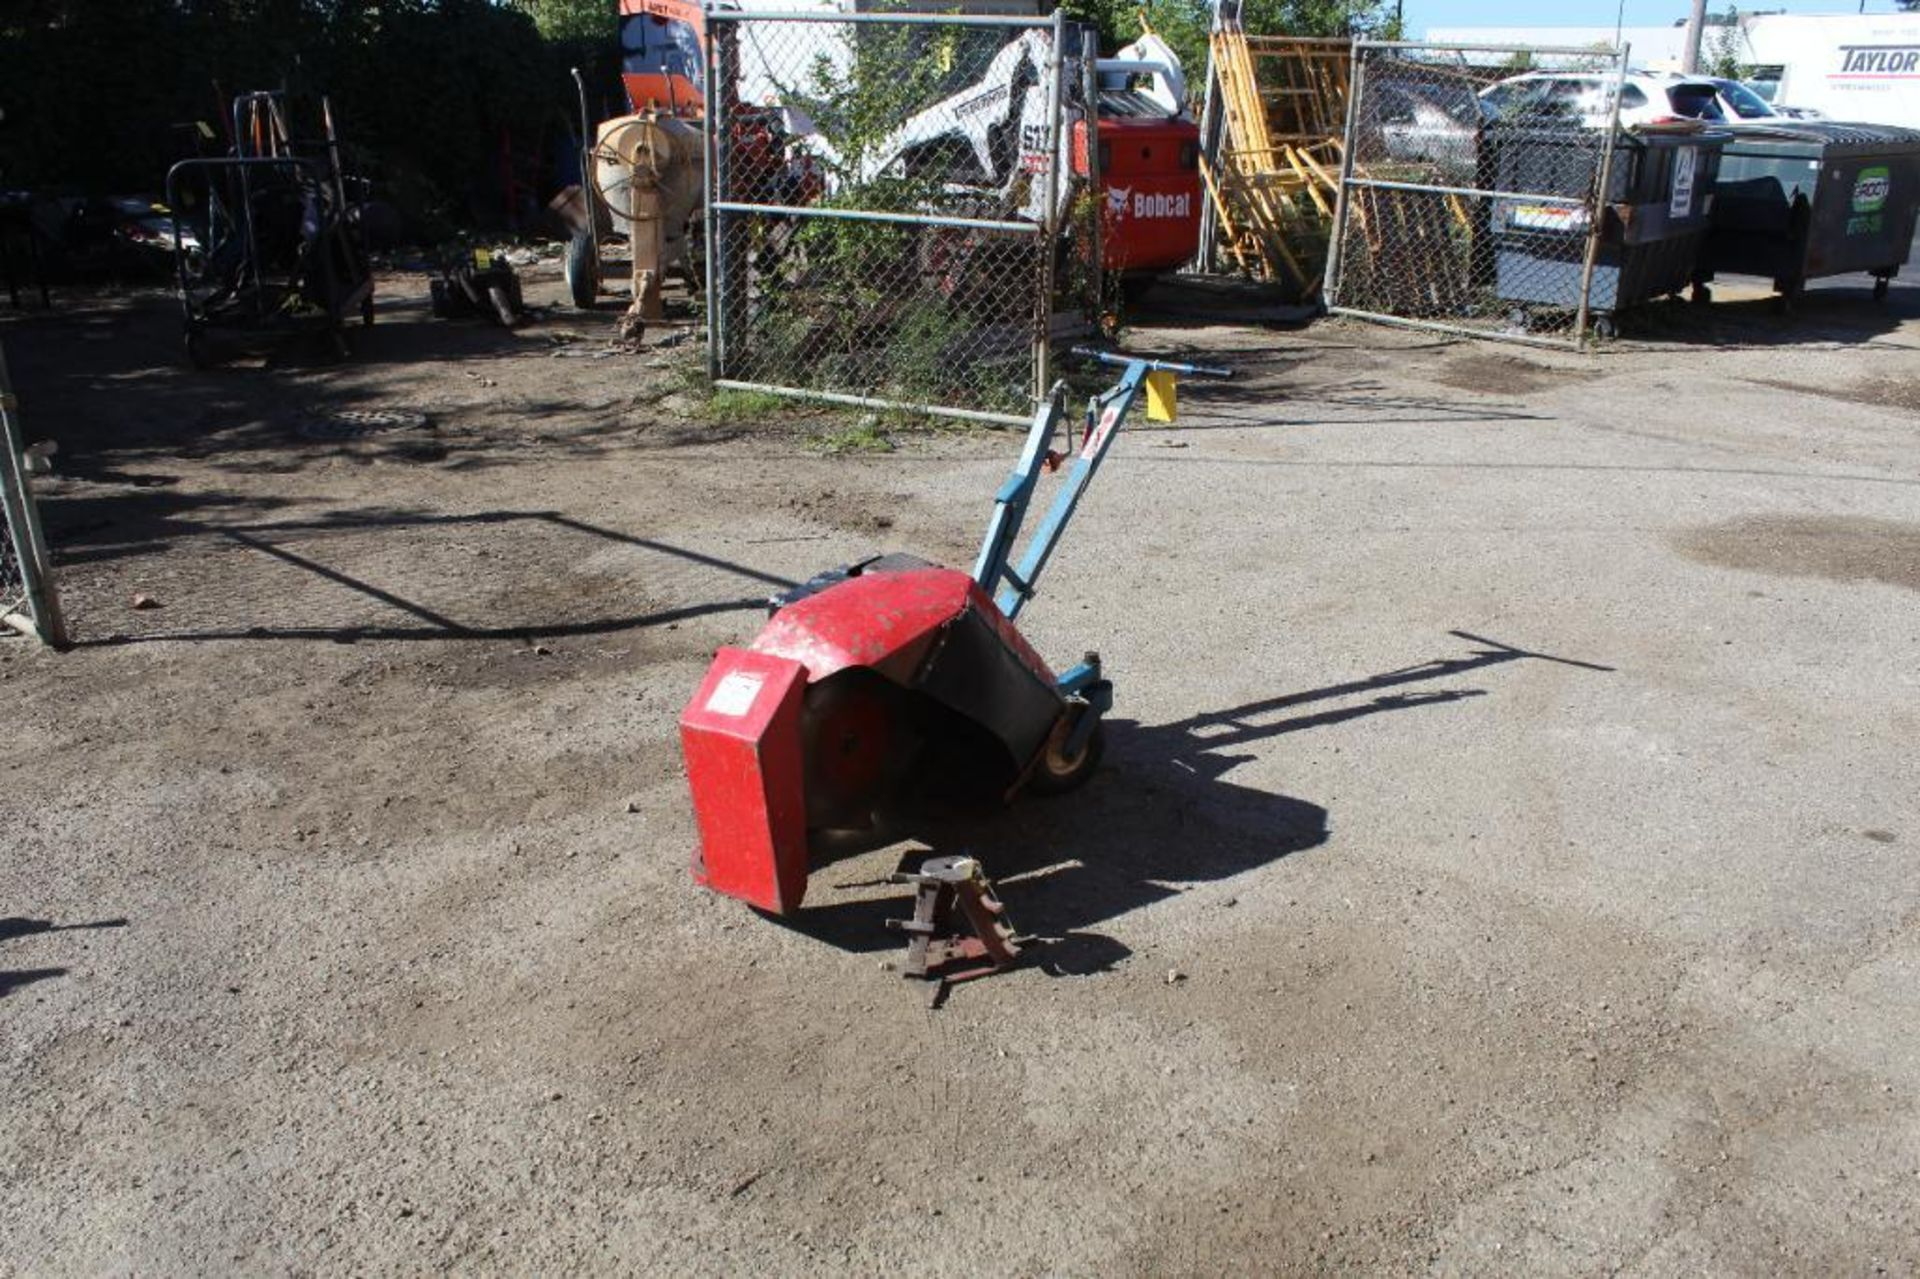 E-Z Trench EZ8000 Mini Trench with Bed Cutting Attachment, S/N 200383 - Image 2 of 4